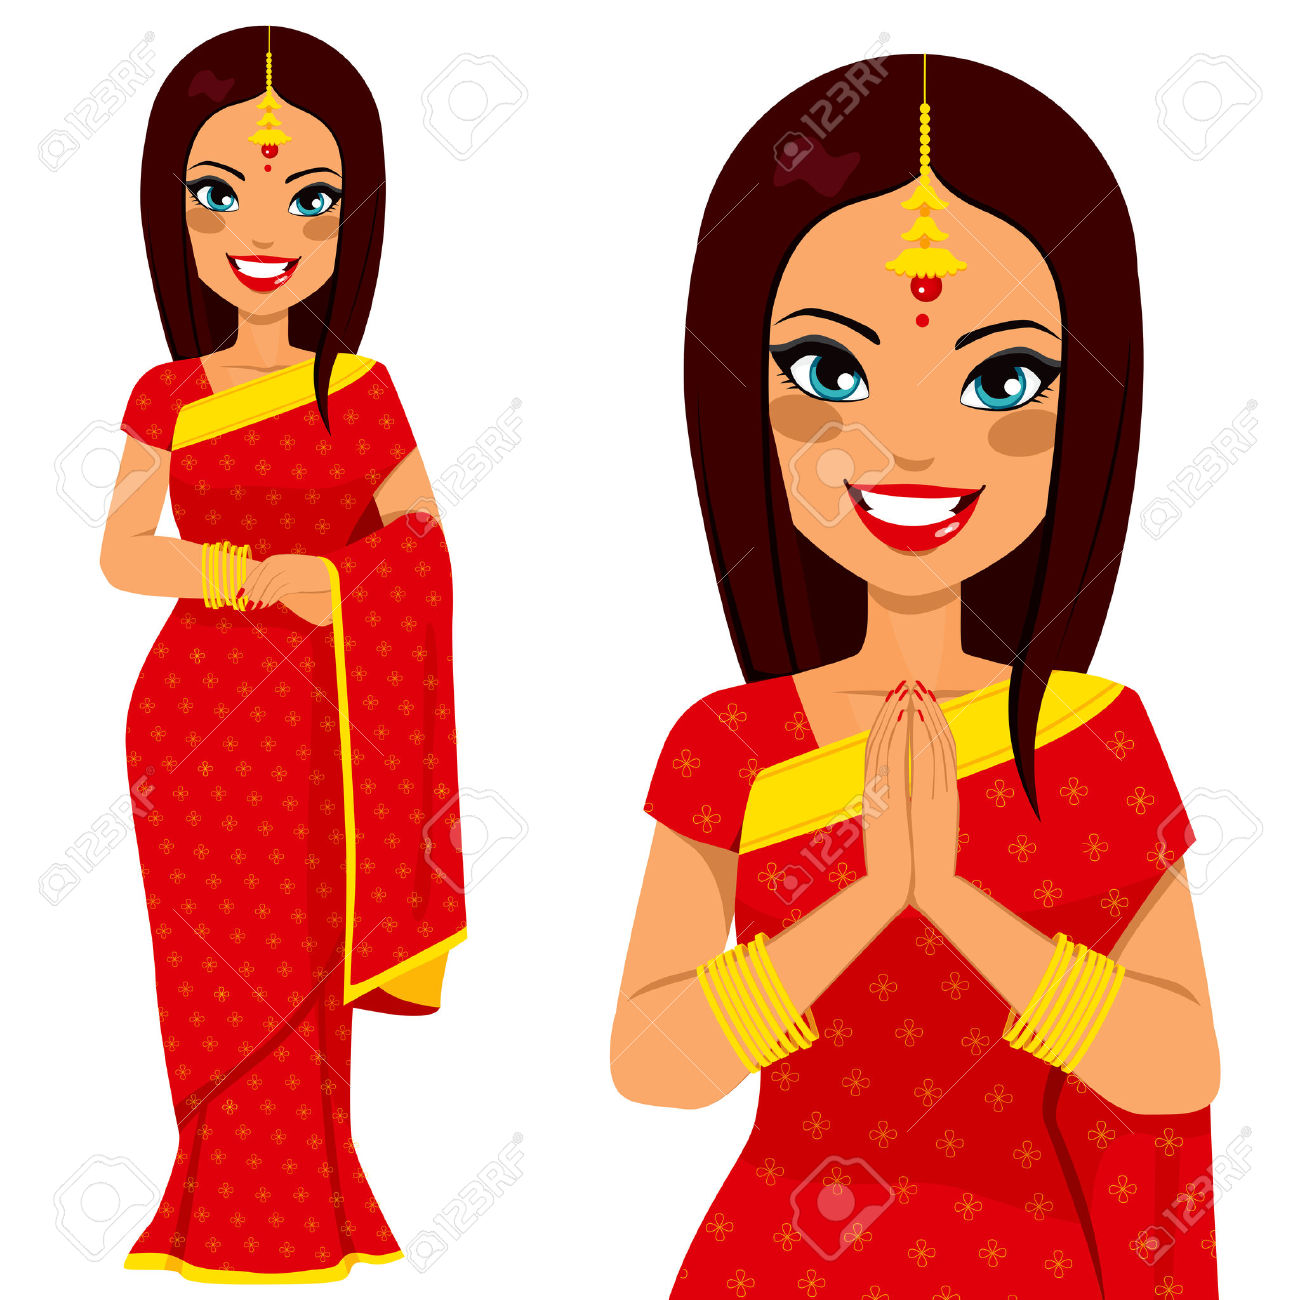 ina hindu single women Meet single muslim women in shamokin ina 27, wind gap shia 28 buddhist single women in shamokin hindu single women in shamokin.